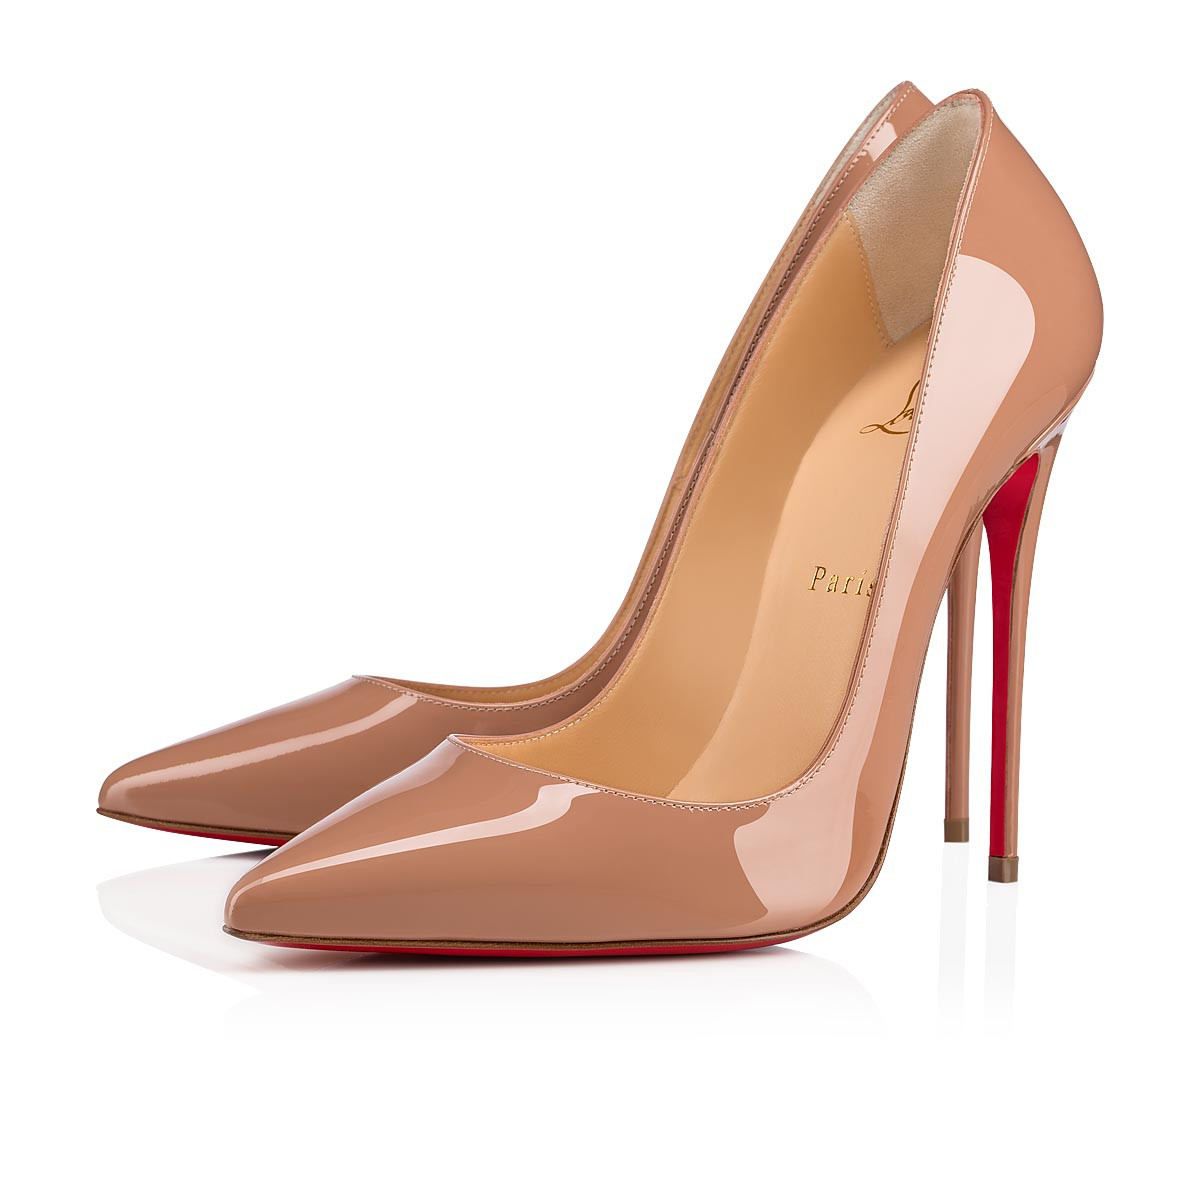 wholesale dealer dbfd4 f2c03 So Kate 120 Nude Patent Leather - Women Shoes - Christian Louboutin